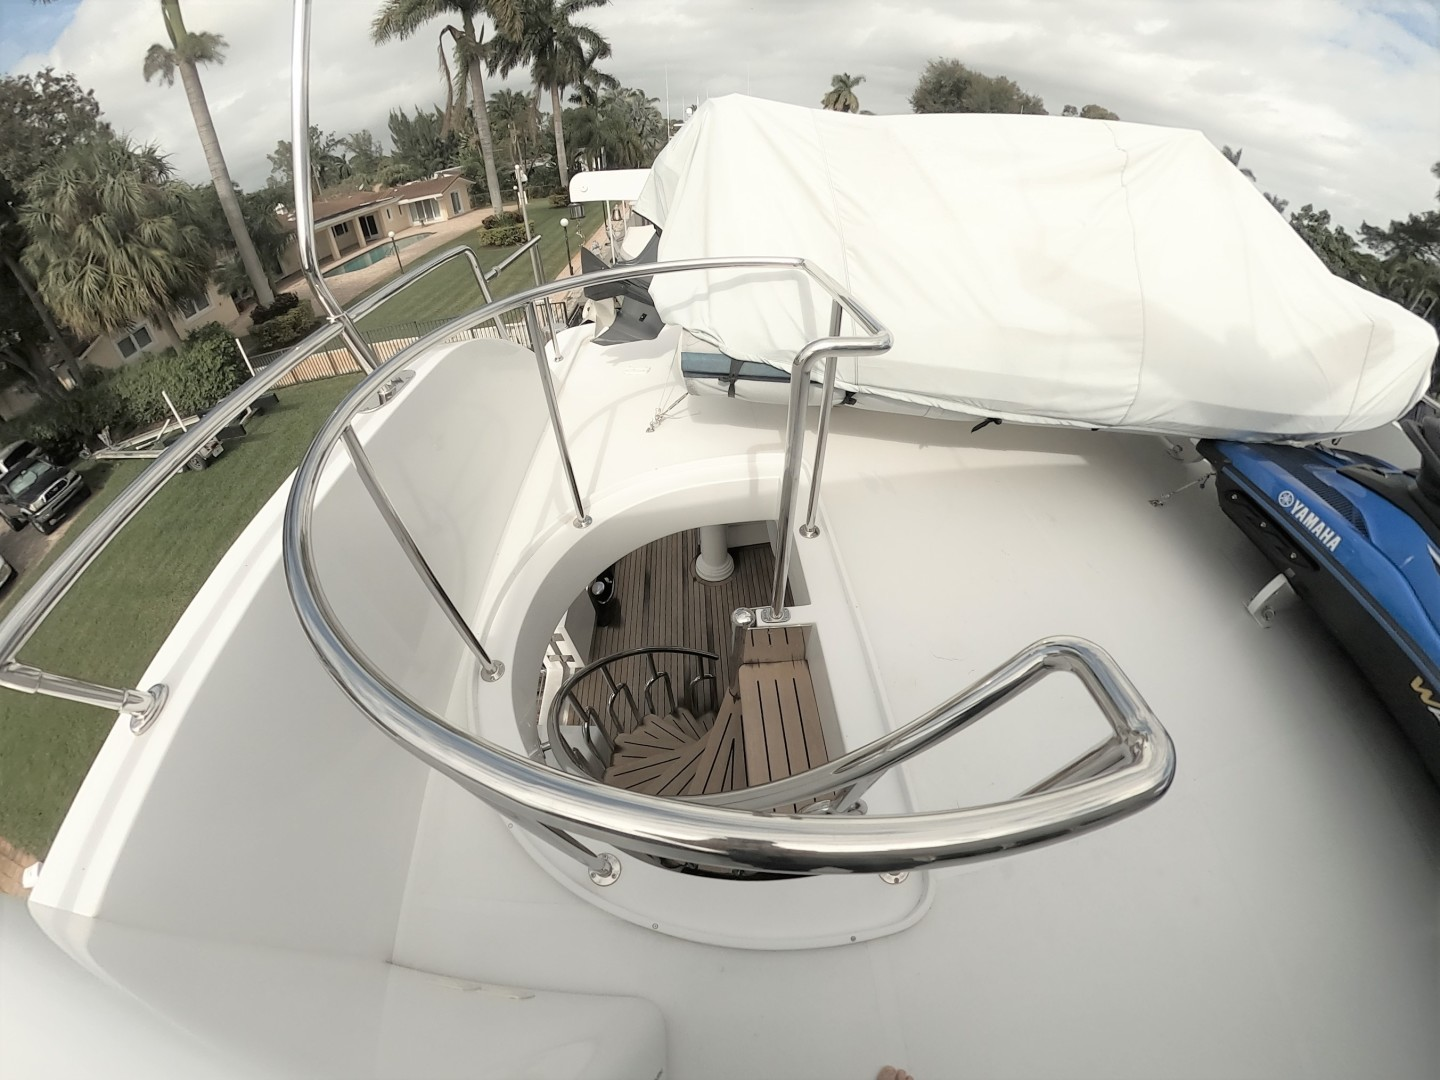 Hargrave-Tri Deck 2001-SeaStar Fort Lauderdale-Florida-United States-Staircase to Aft Deck-1566986 | Thumbnail